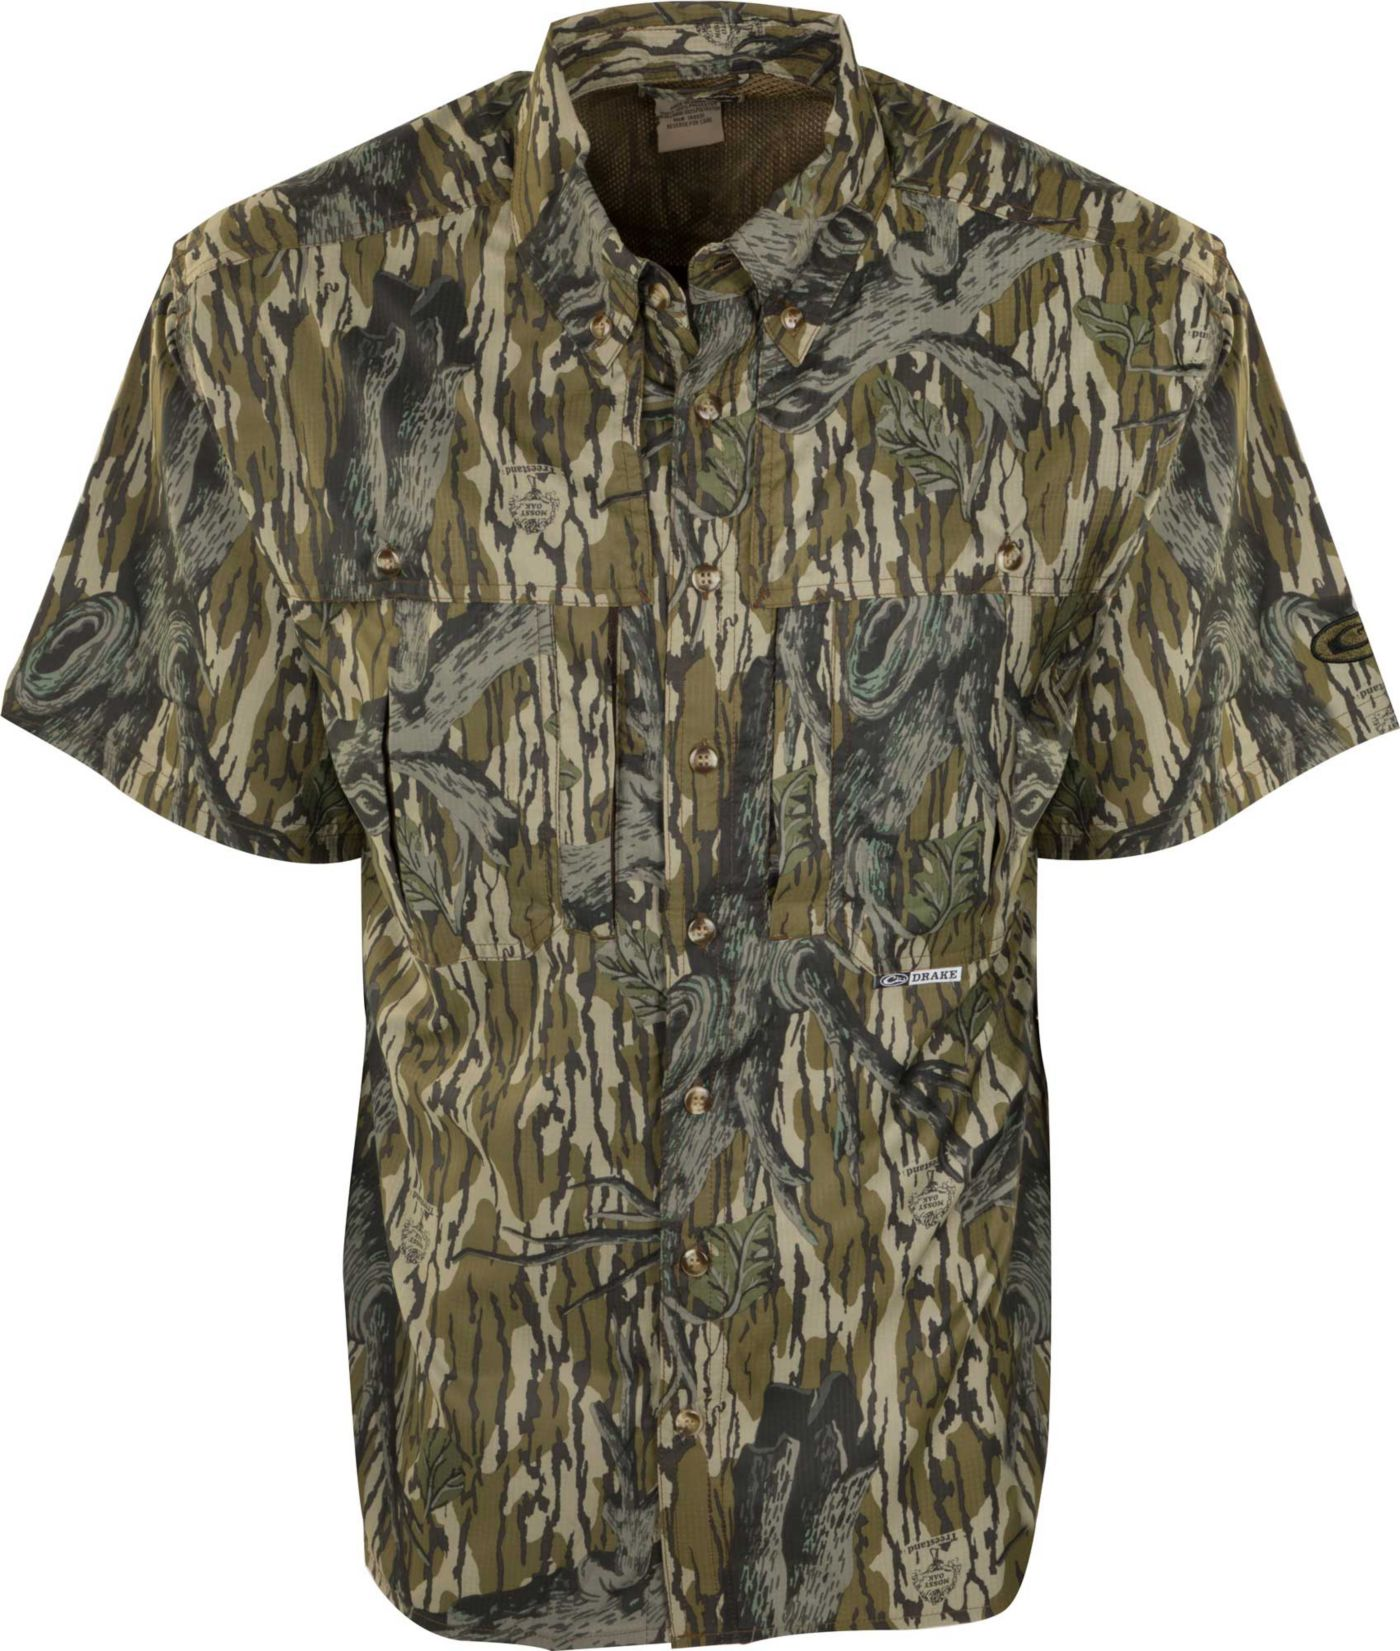 Drake Waterfowl Men's Camo Flyweight Wingshooter's Short Sleeve Hunting Shirt